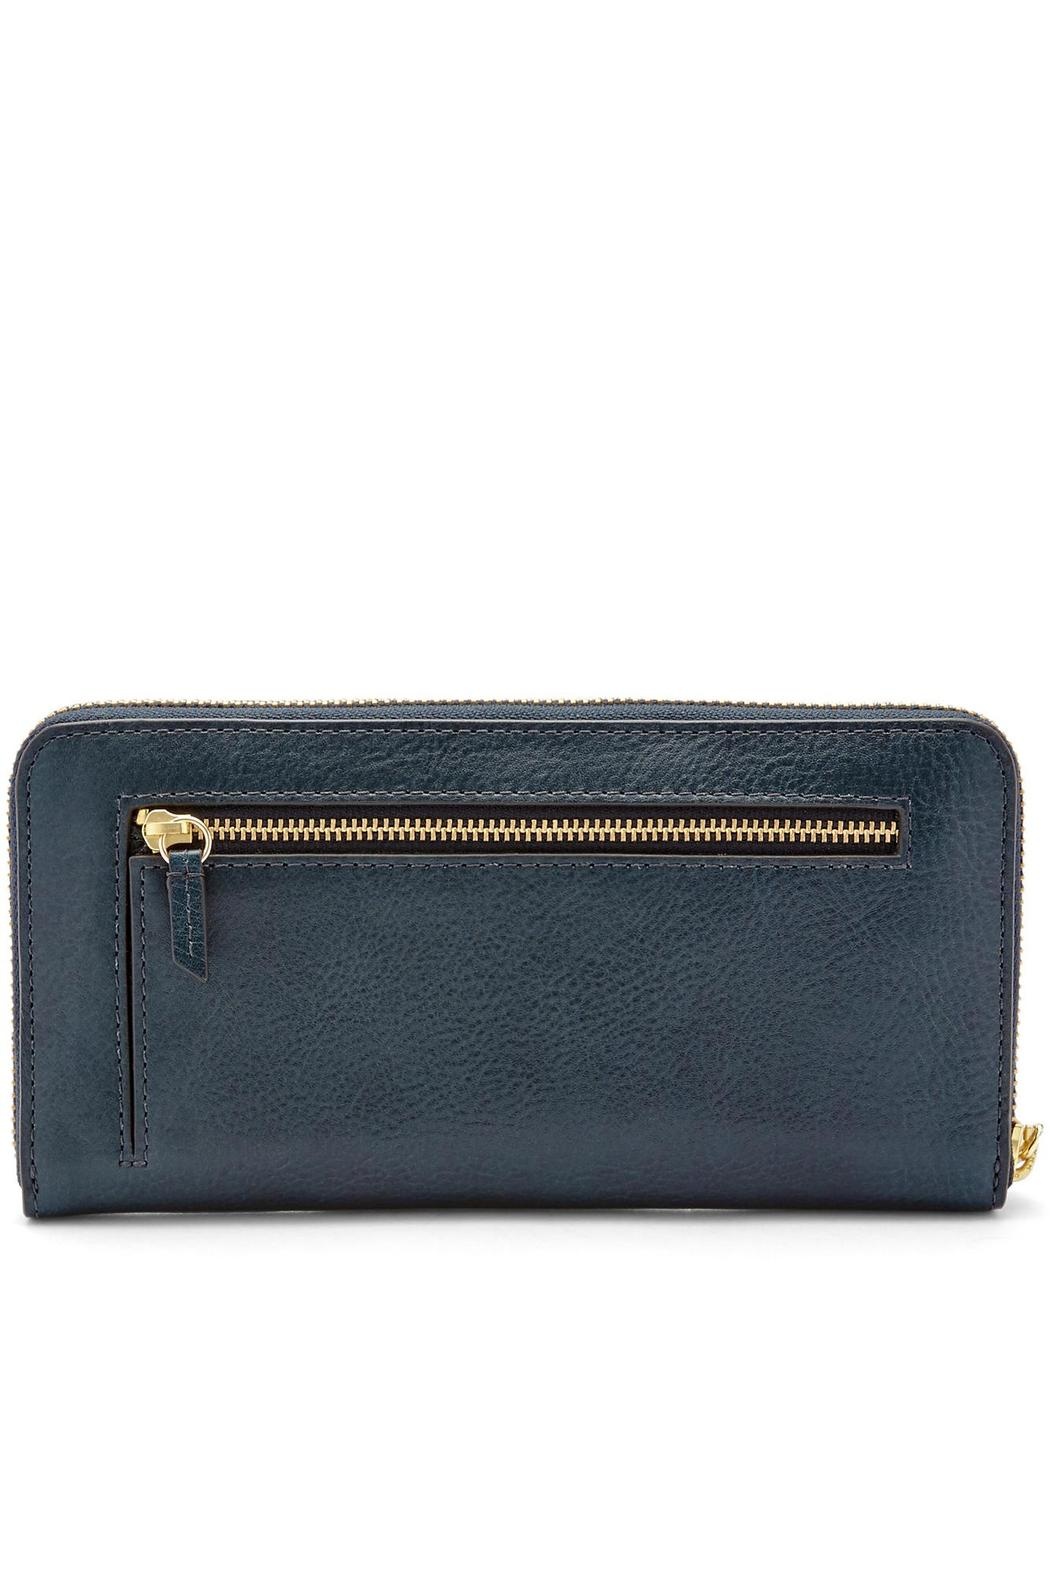 Fossil Sydney Zip Clutch - Front Full Image